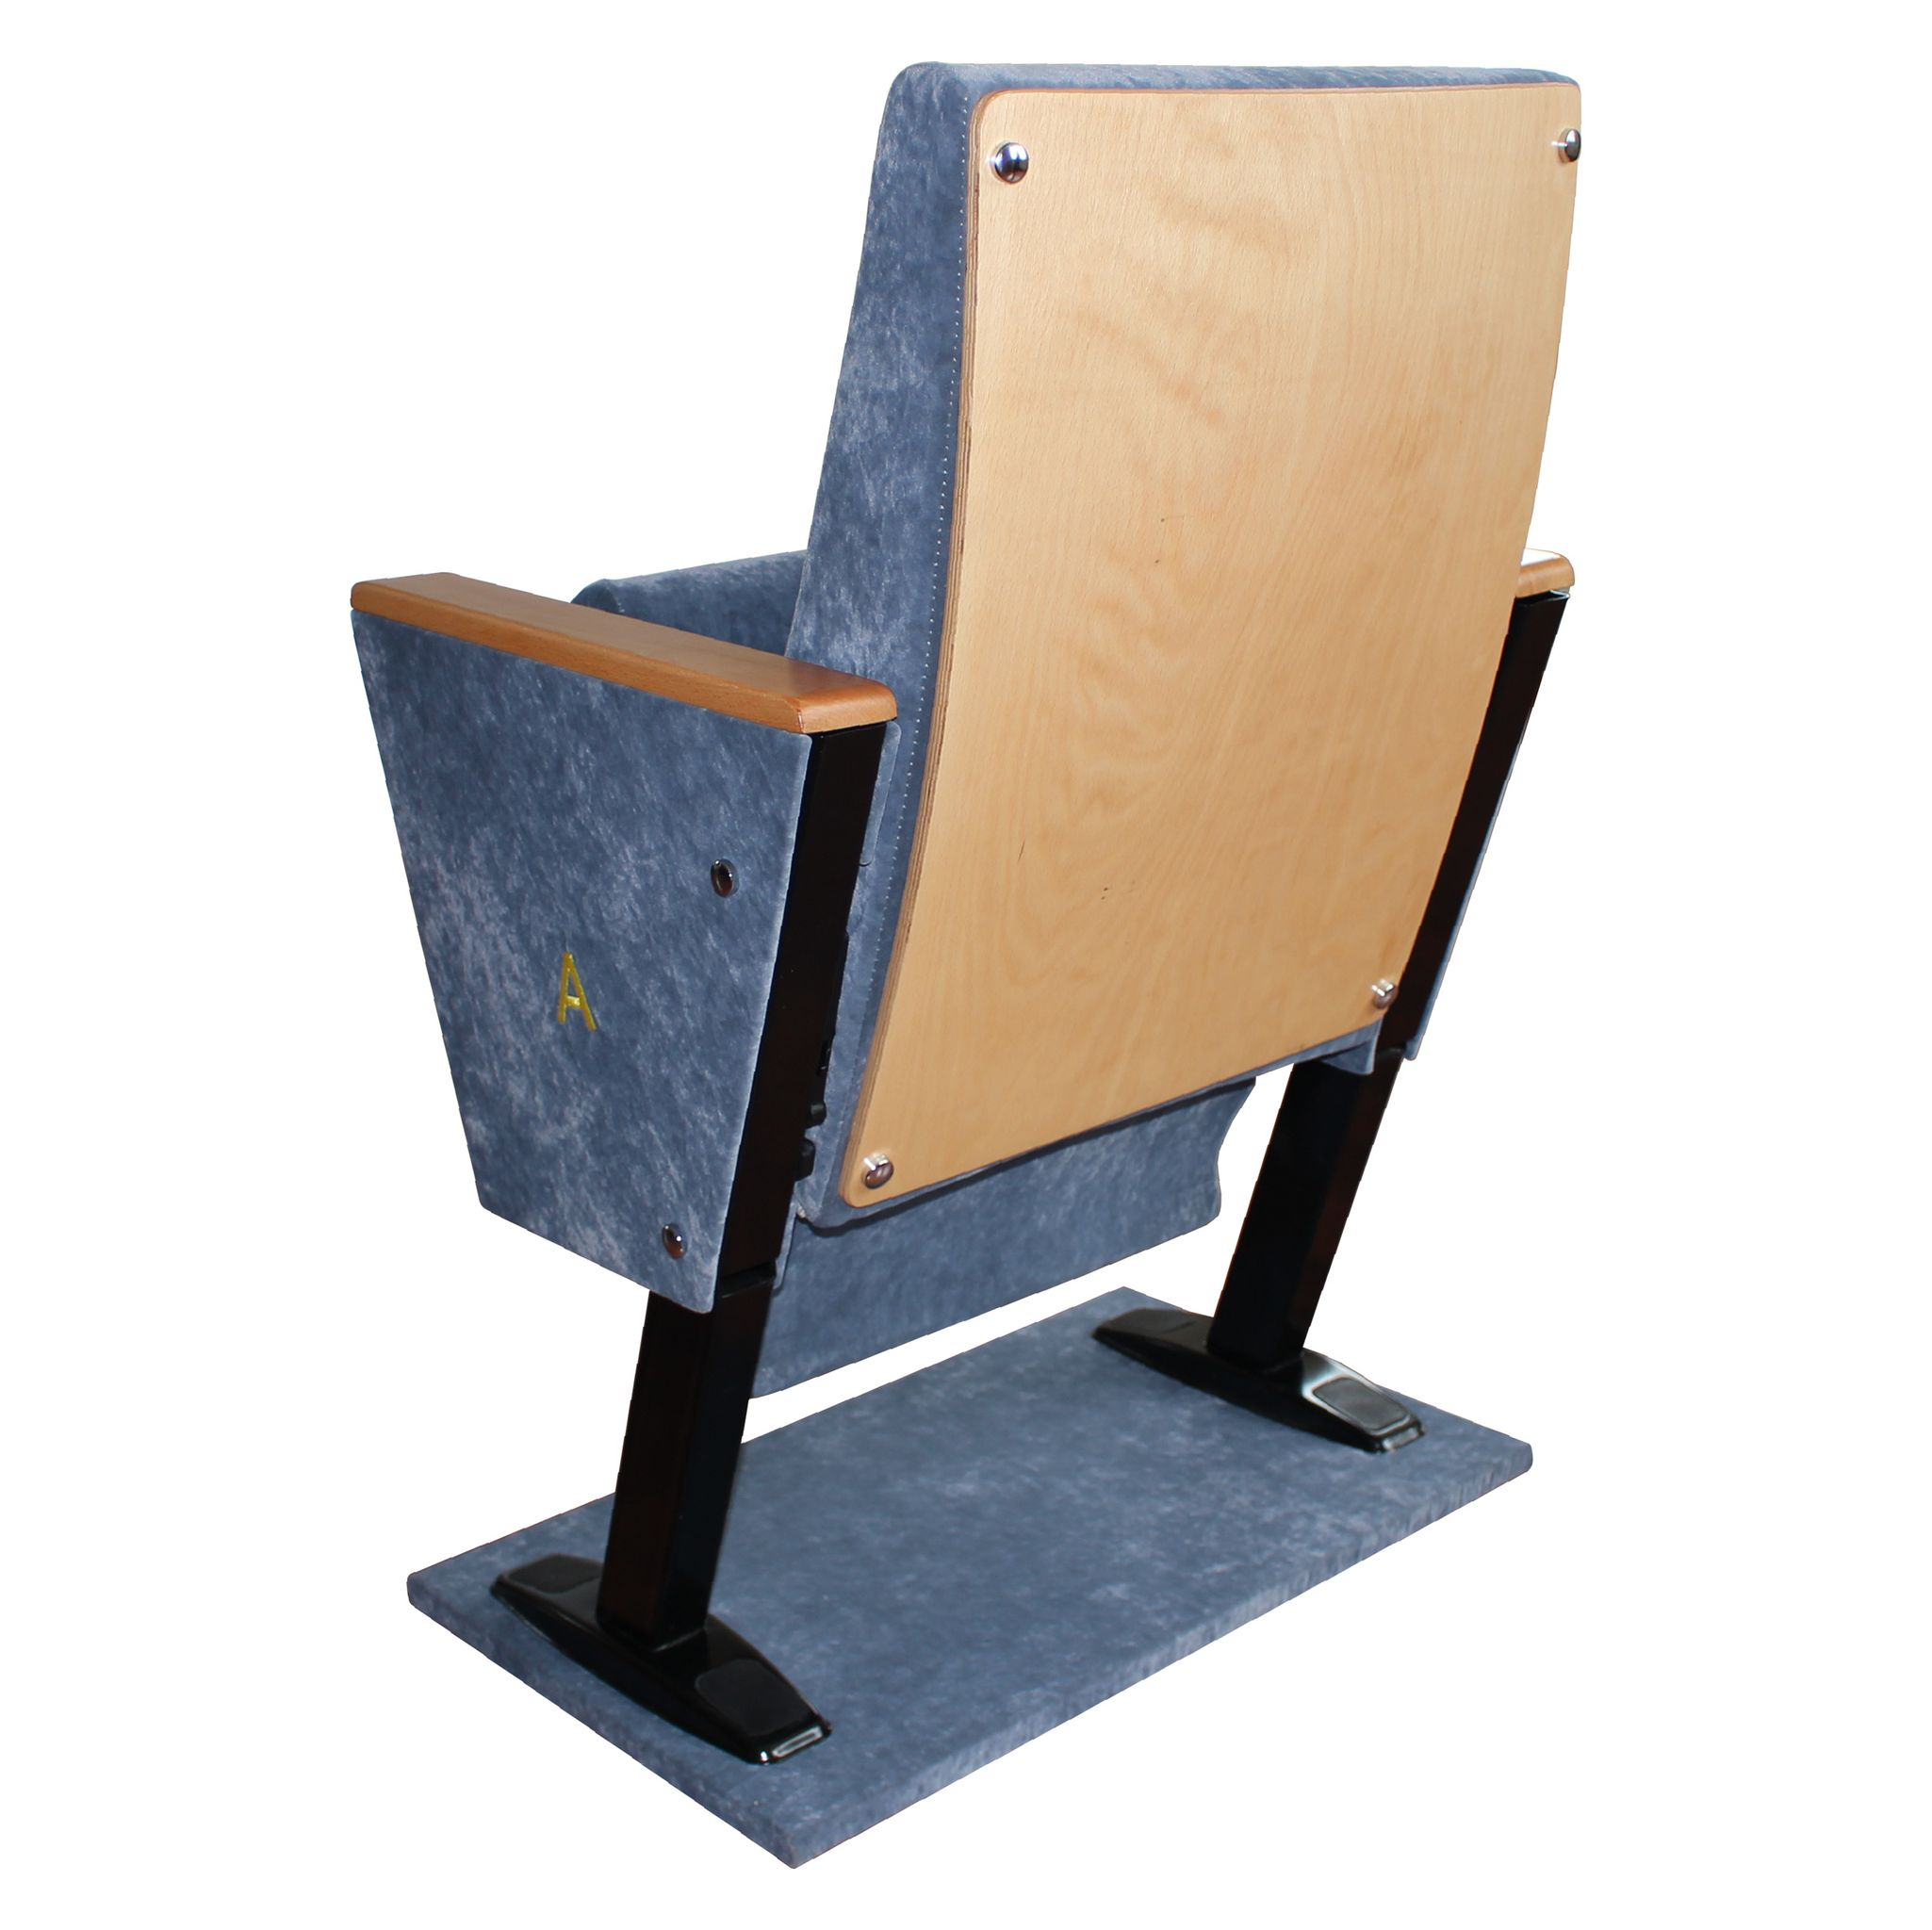 Akon Series - Y60-2 Model - Auditorium, Theater Chair - Dimensions, Price